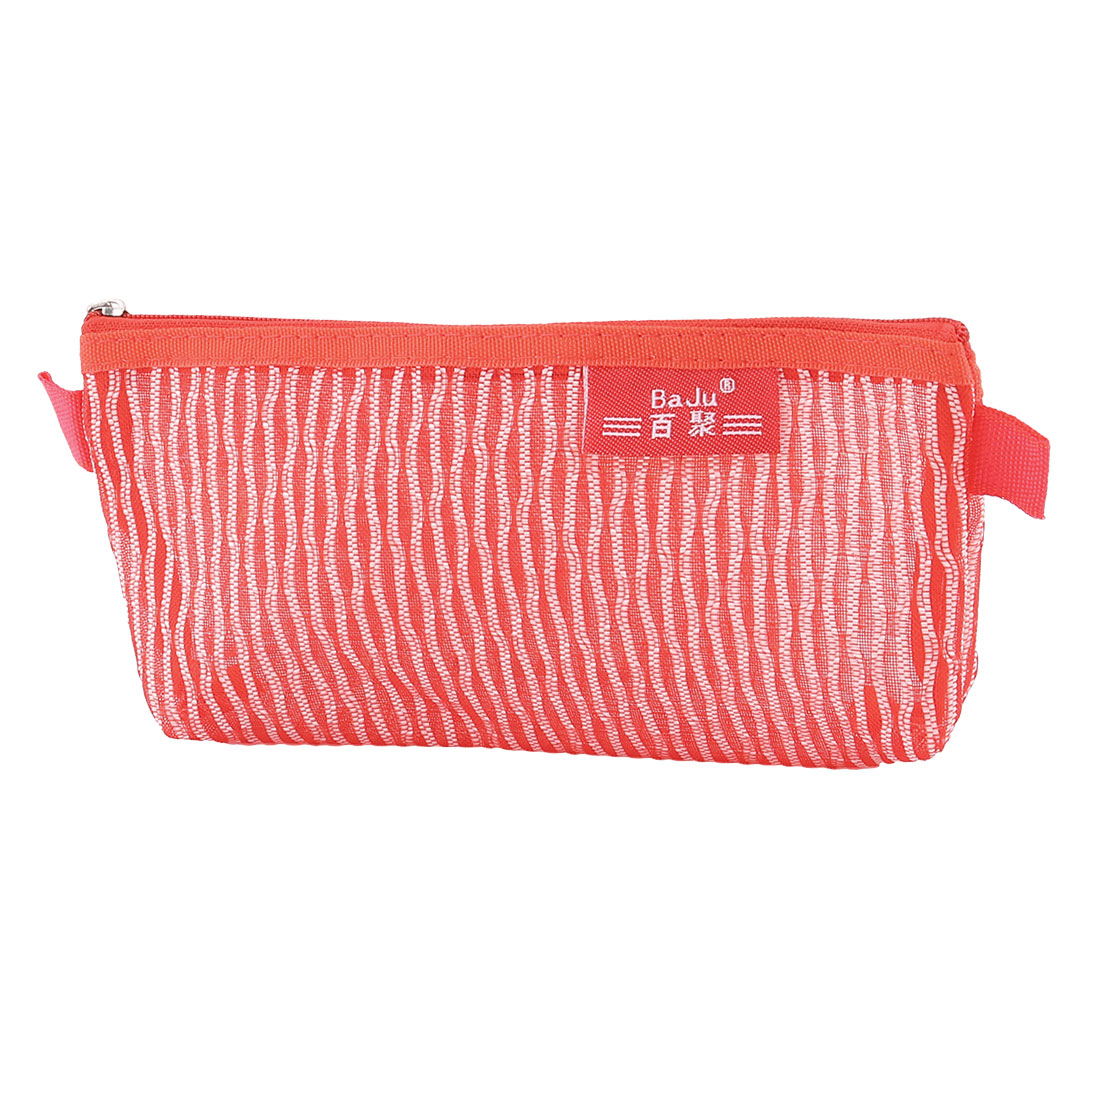 School Nylon Meshy Zippered Pen Pencil Bag Holder for Pouch Red